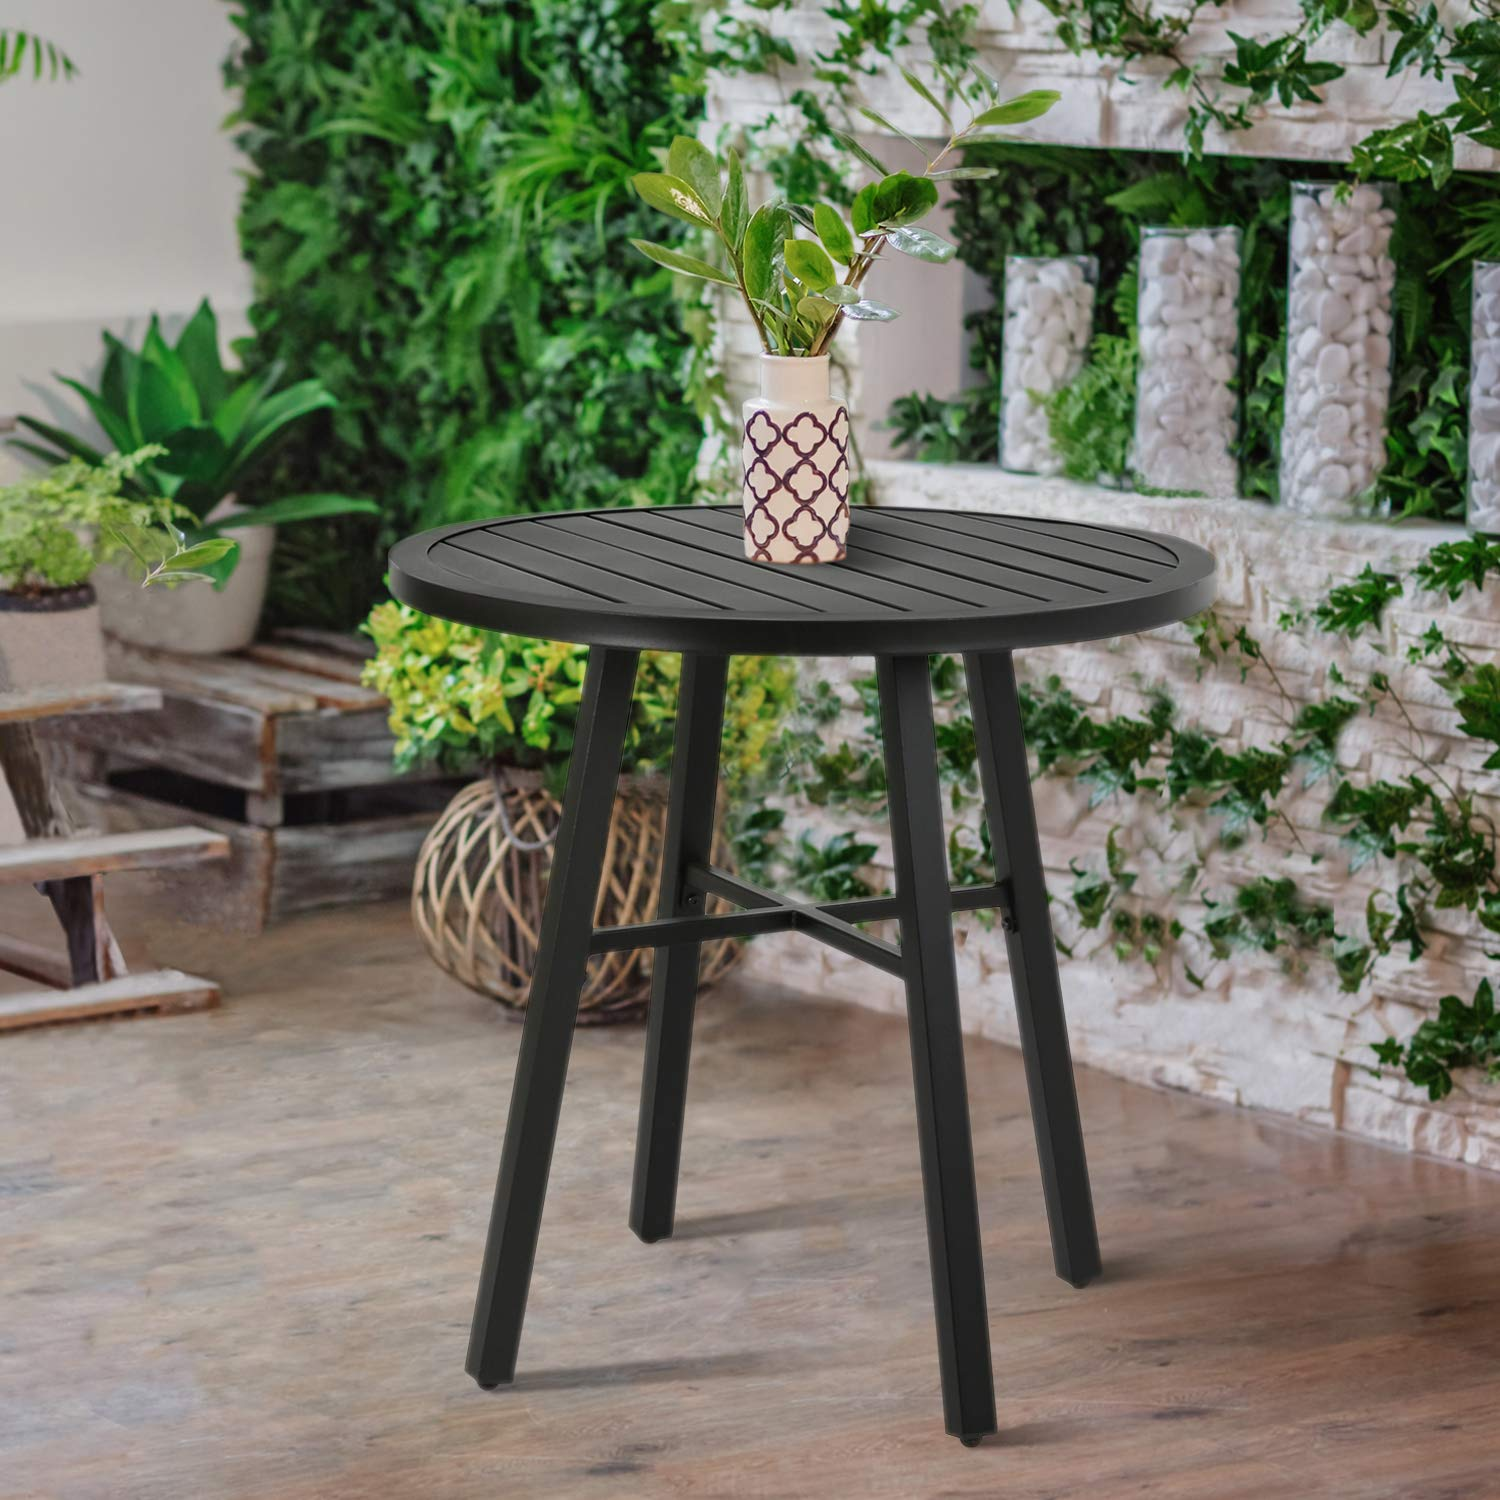 Ulax furniture Outdoor Round Side Table, Patio Coffee Bistro Table by Ulax furniture (Image #2)